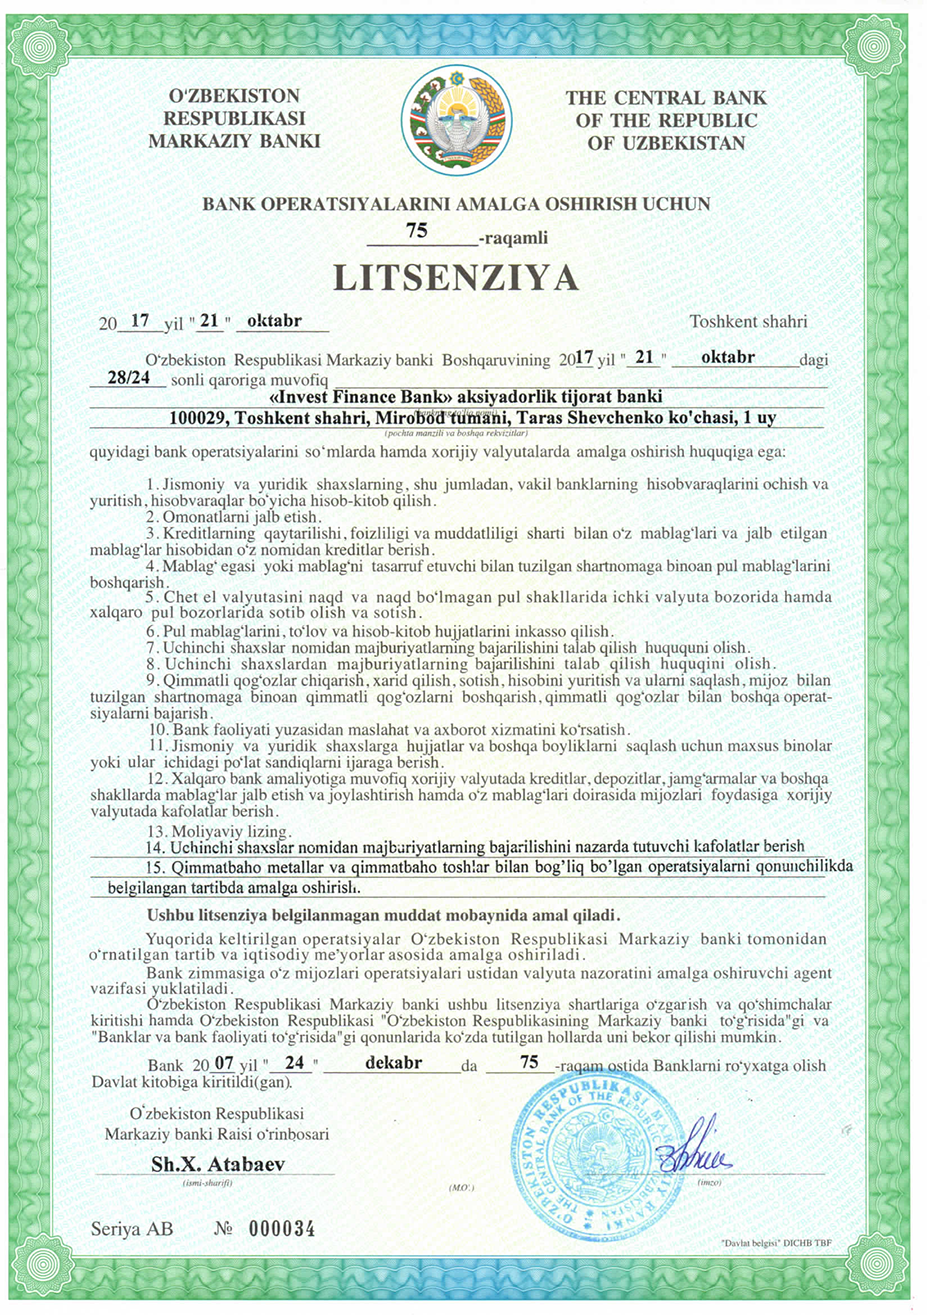 License of the Central Bank